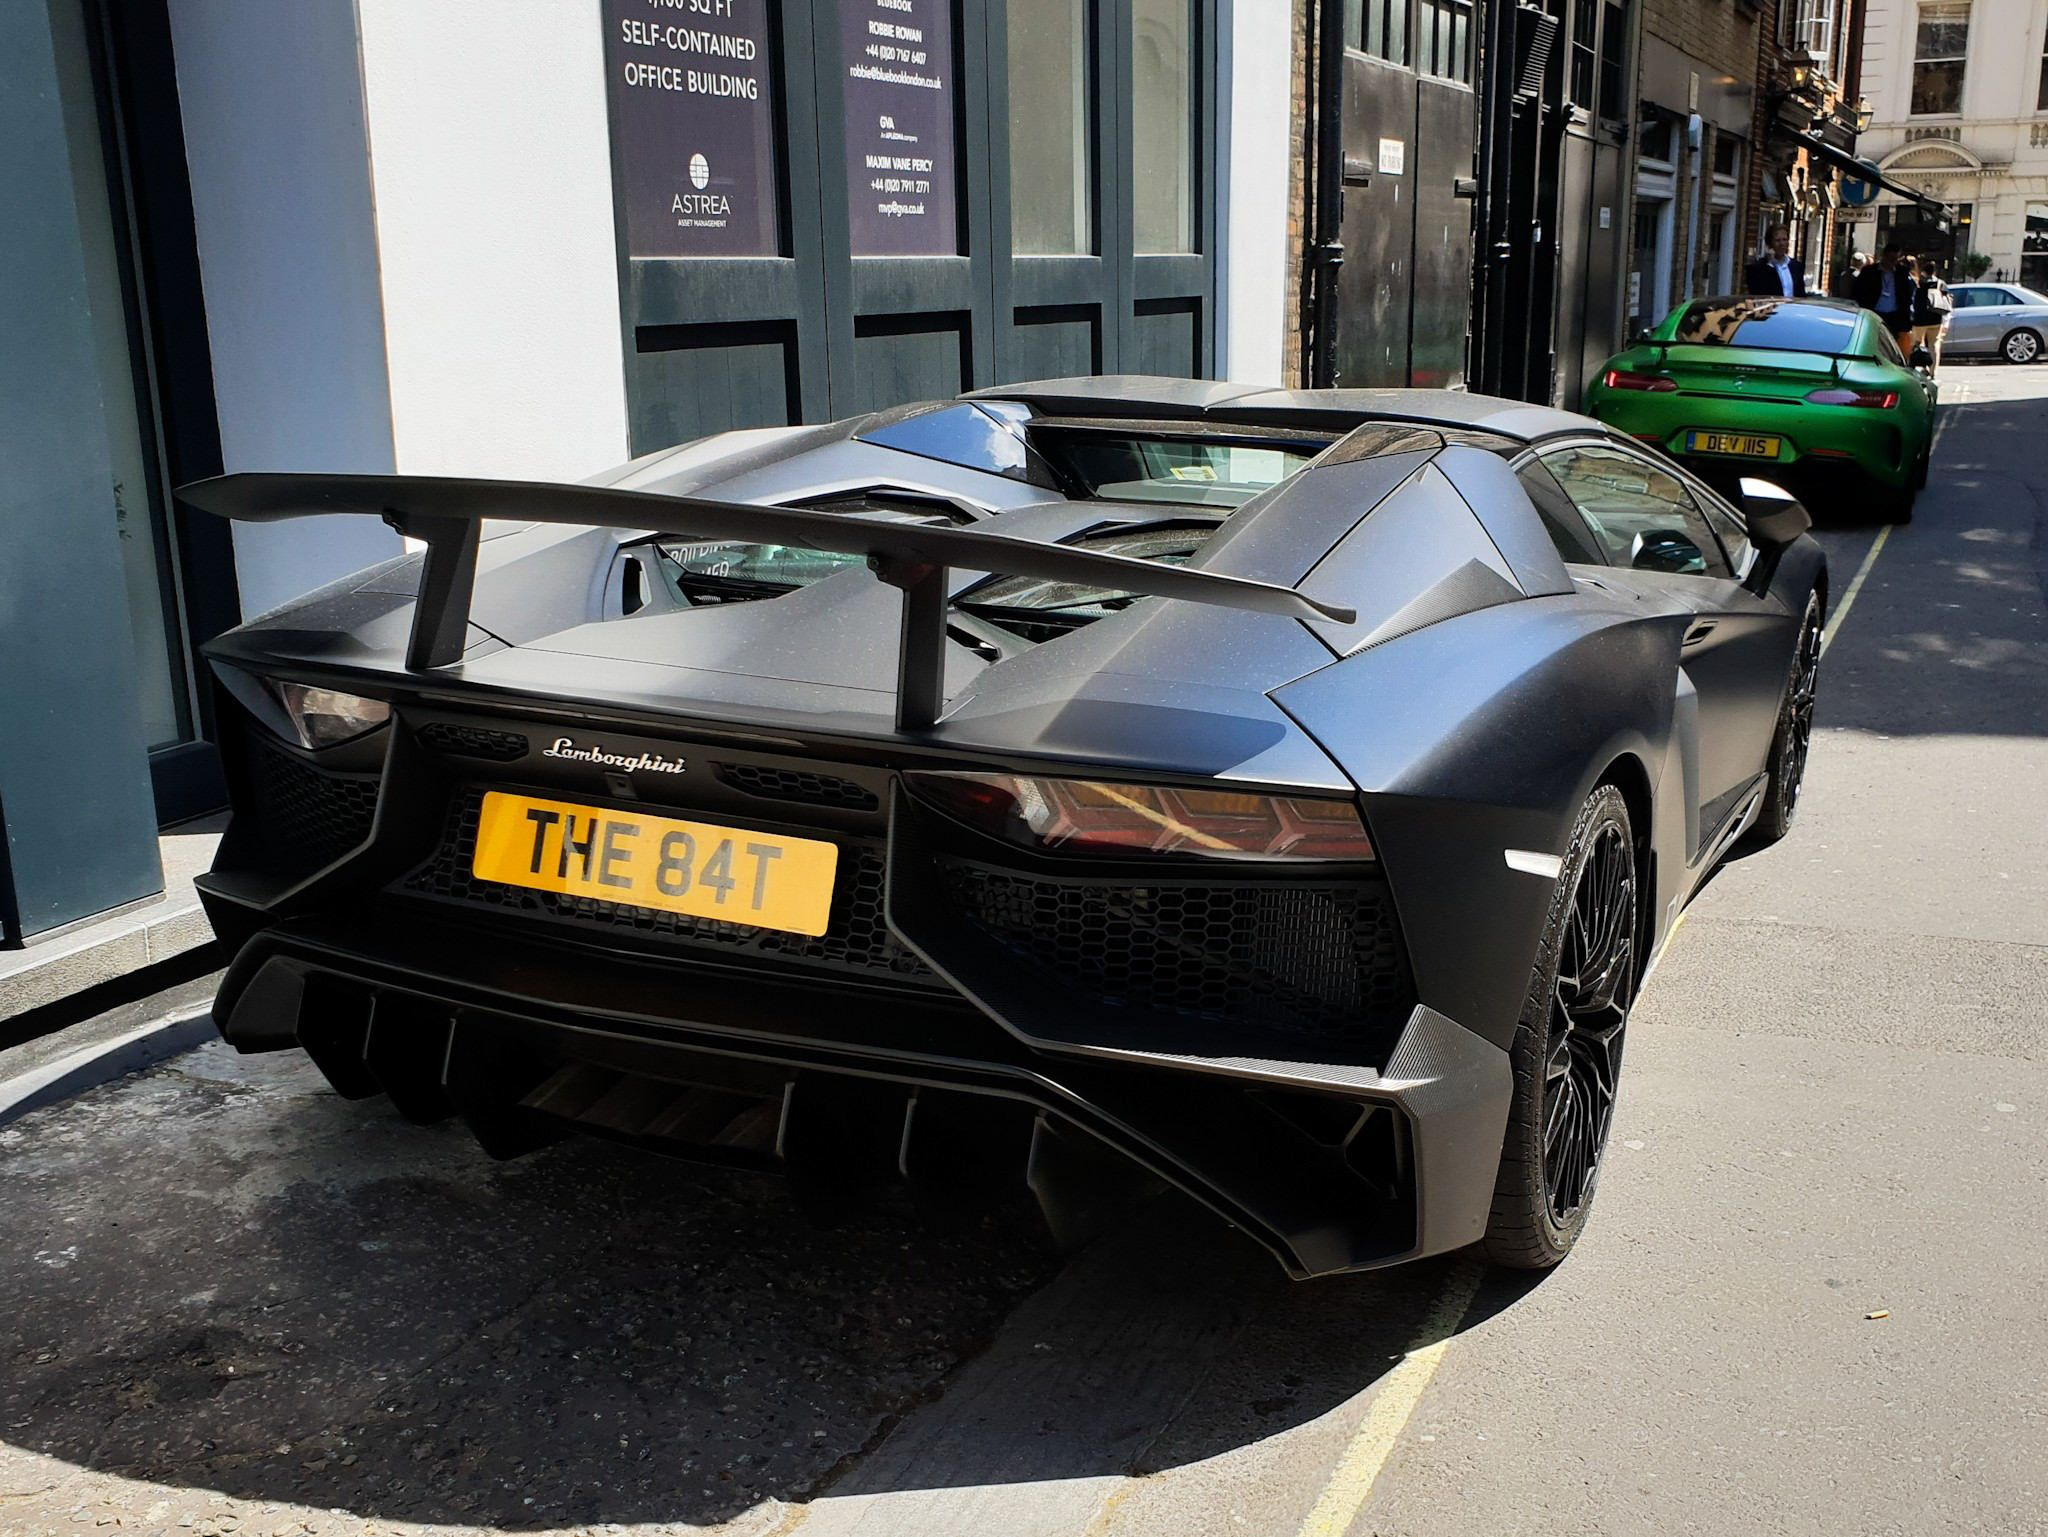 Aventador Sv With The Bat License Plate In London Super Fast Cars Luxury Cars Sports Car